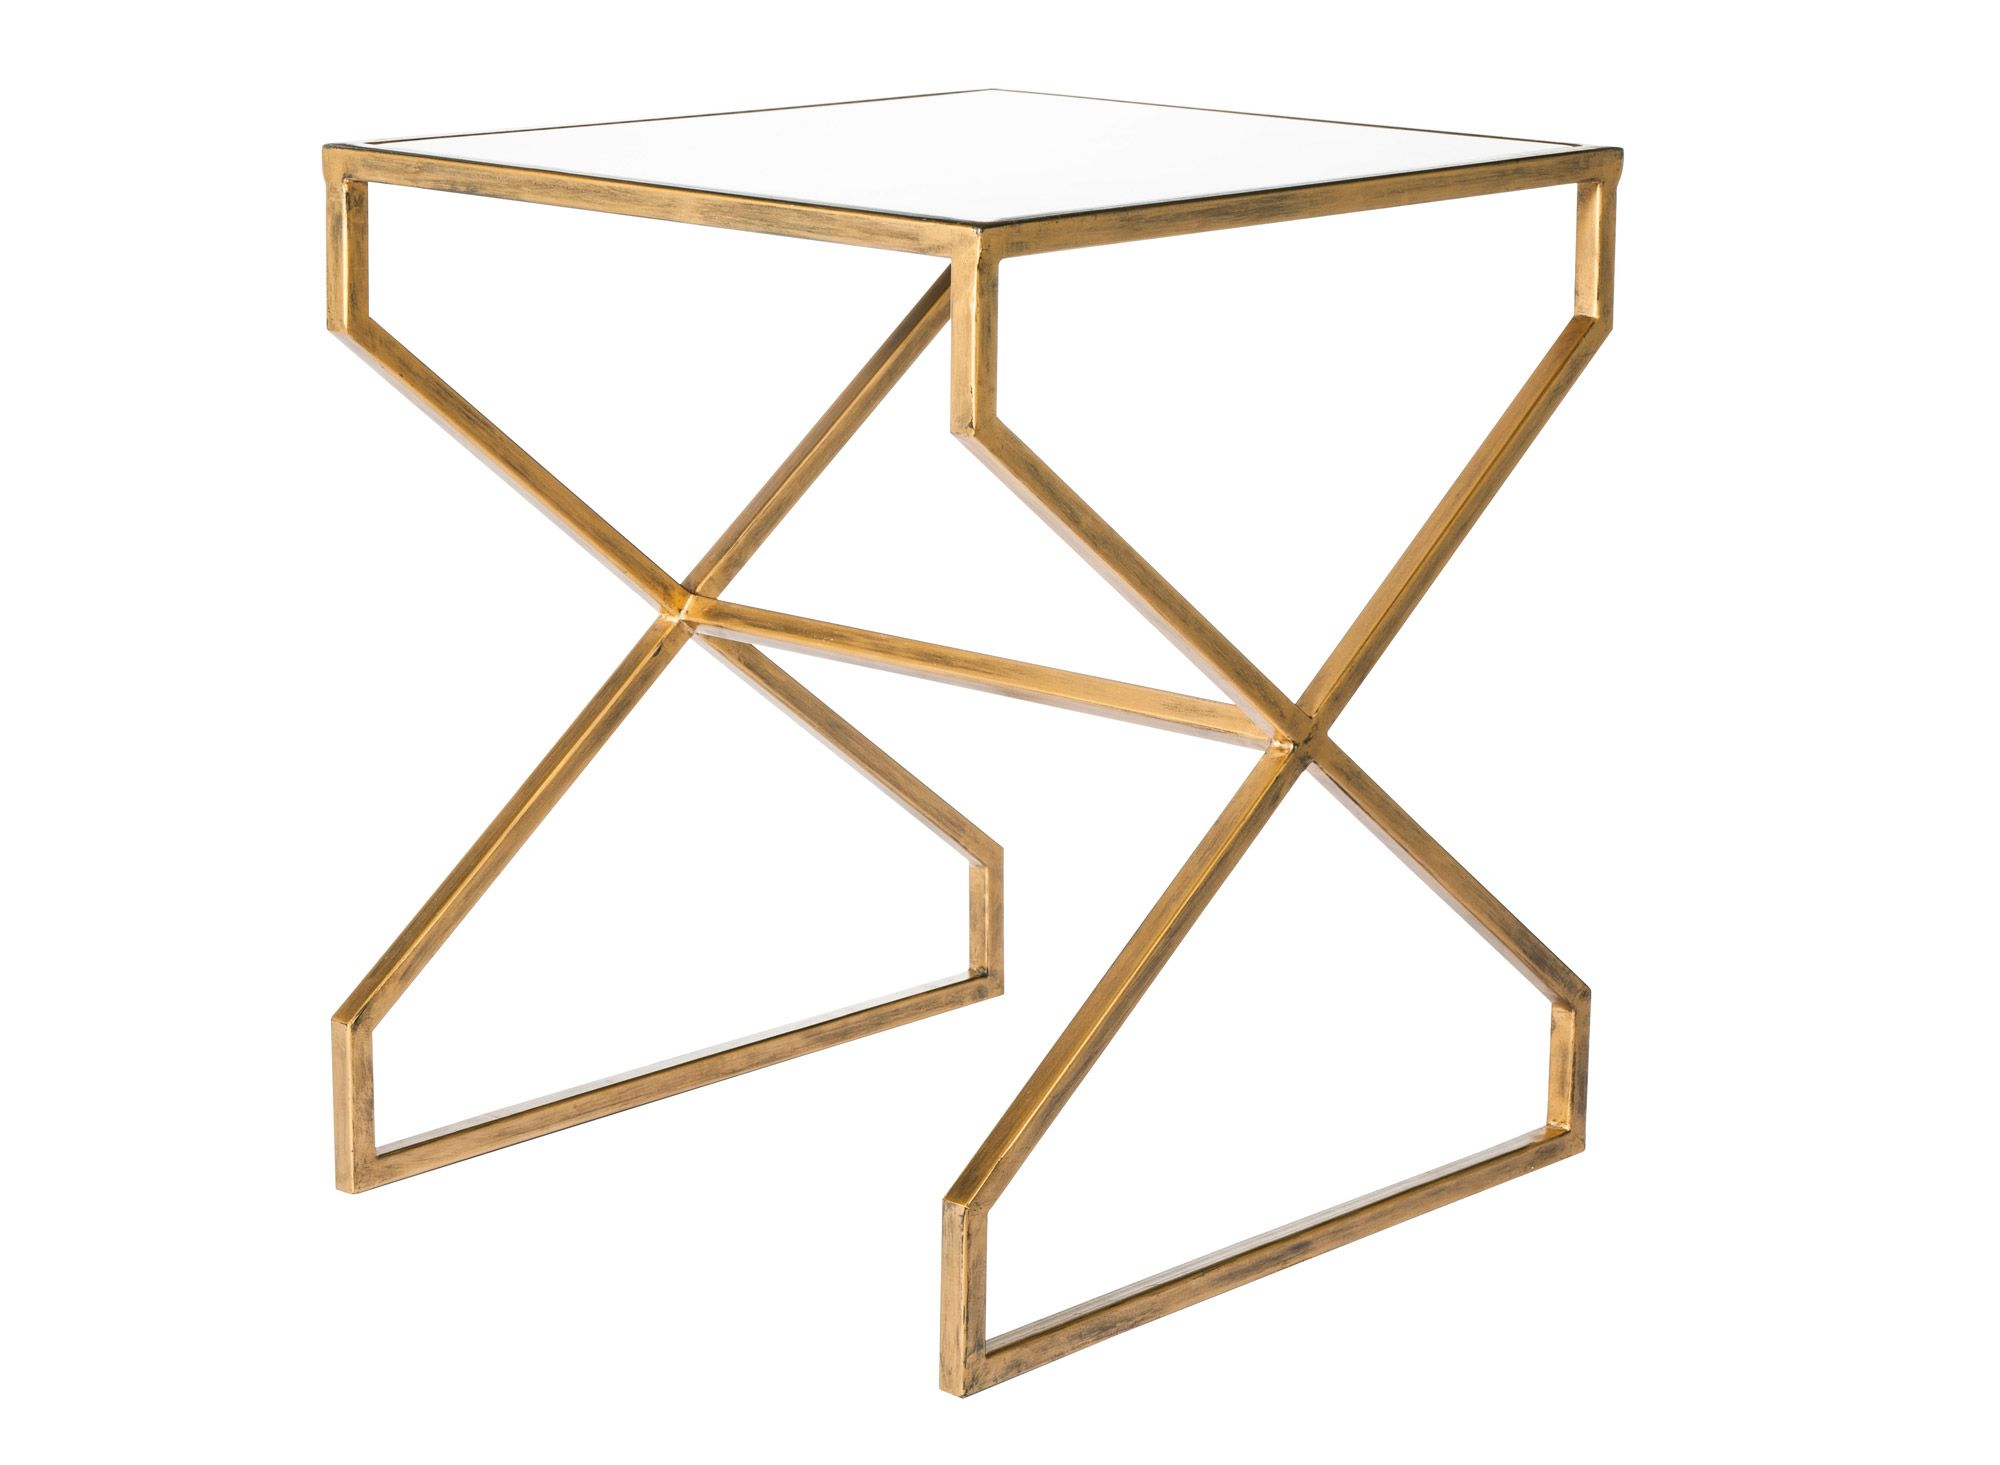 exclusive sneak peek nate berkus spring summer hbx target turquoise accent table collection for nautical outdoor lighting end lamps chair side with and usb charging electronics